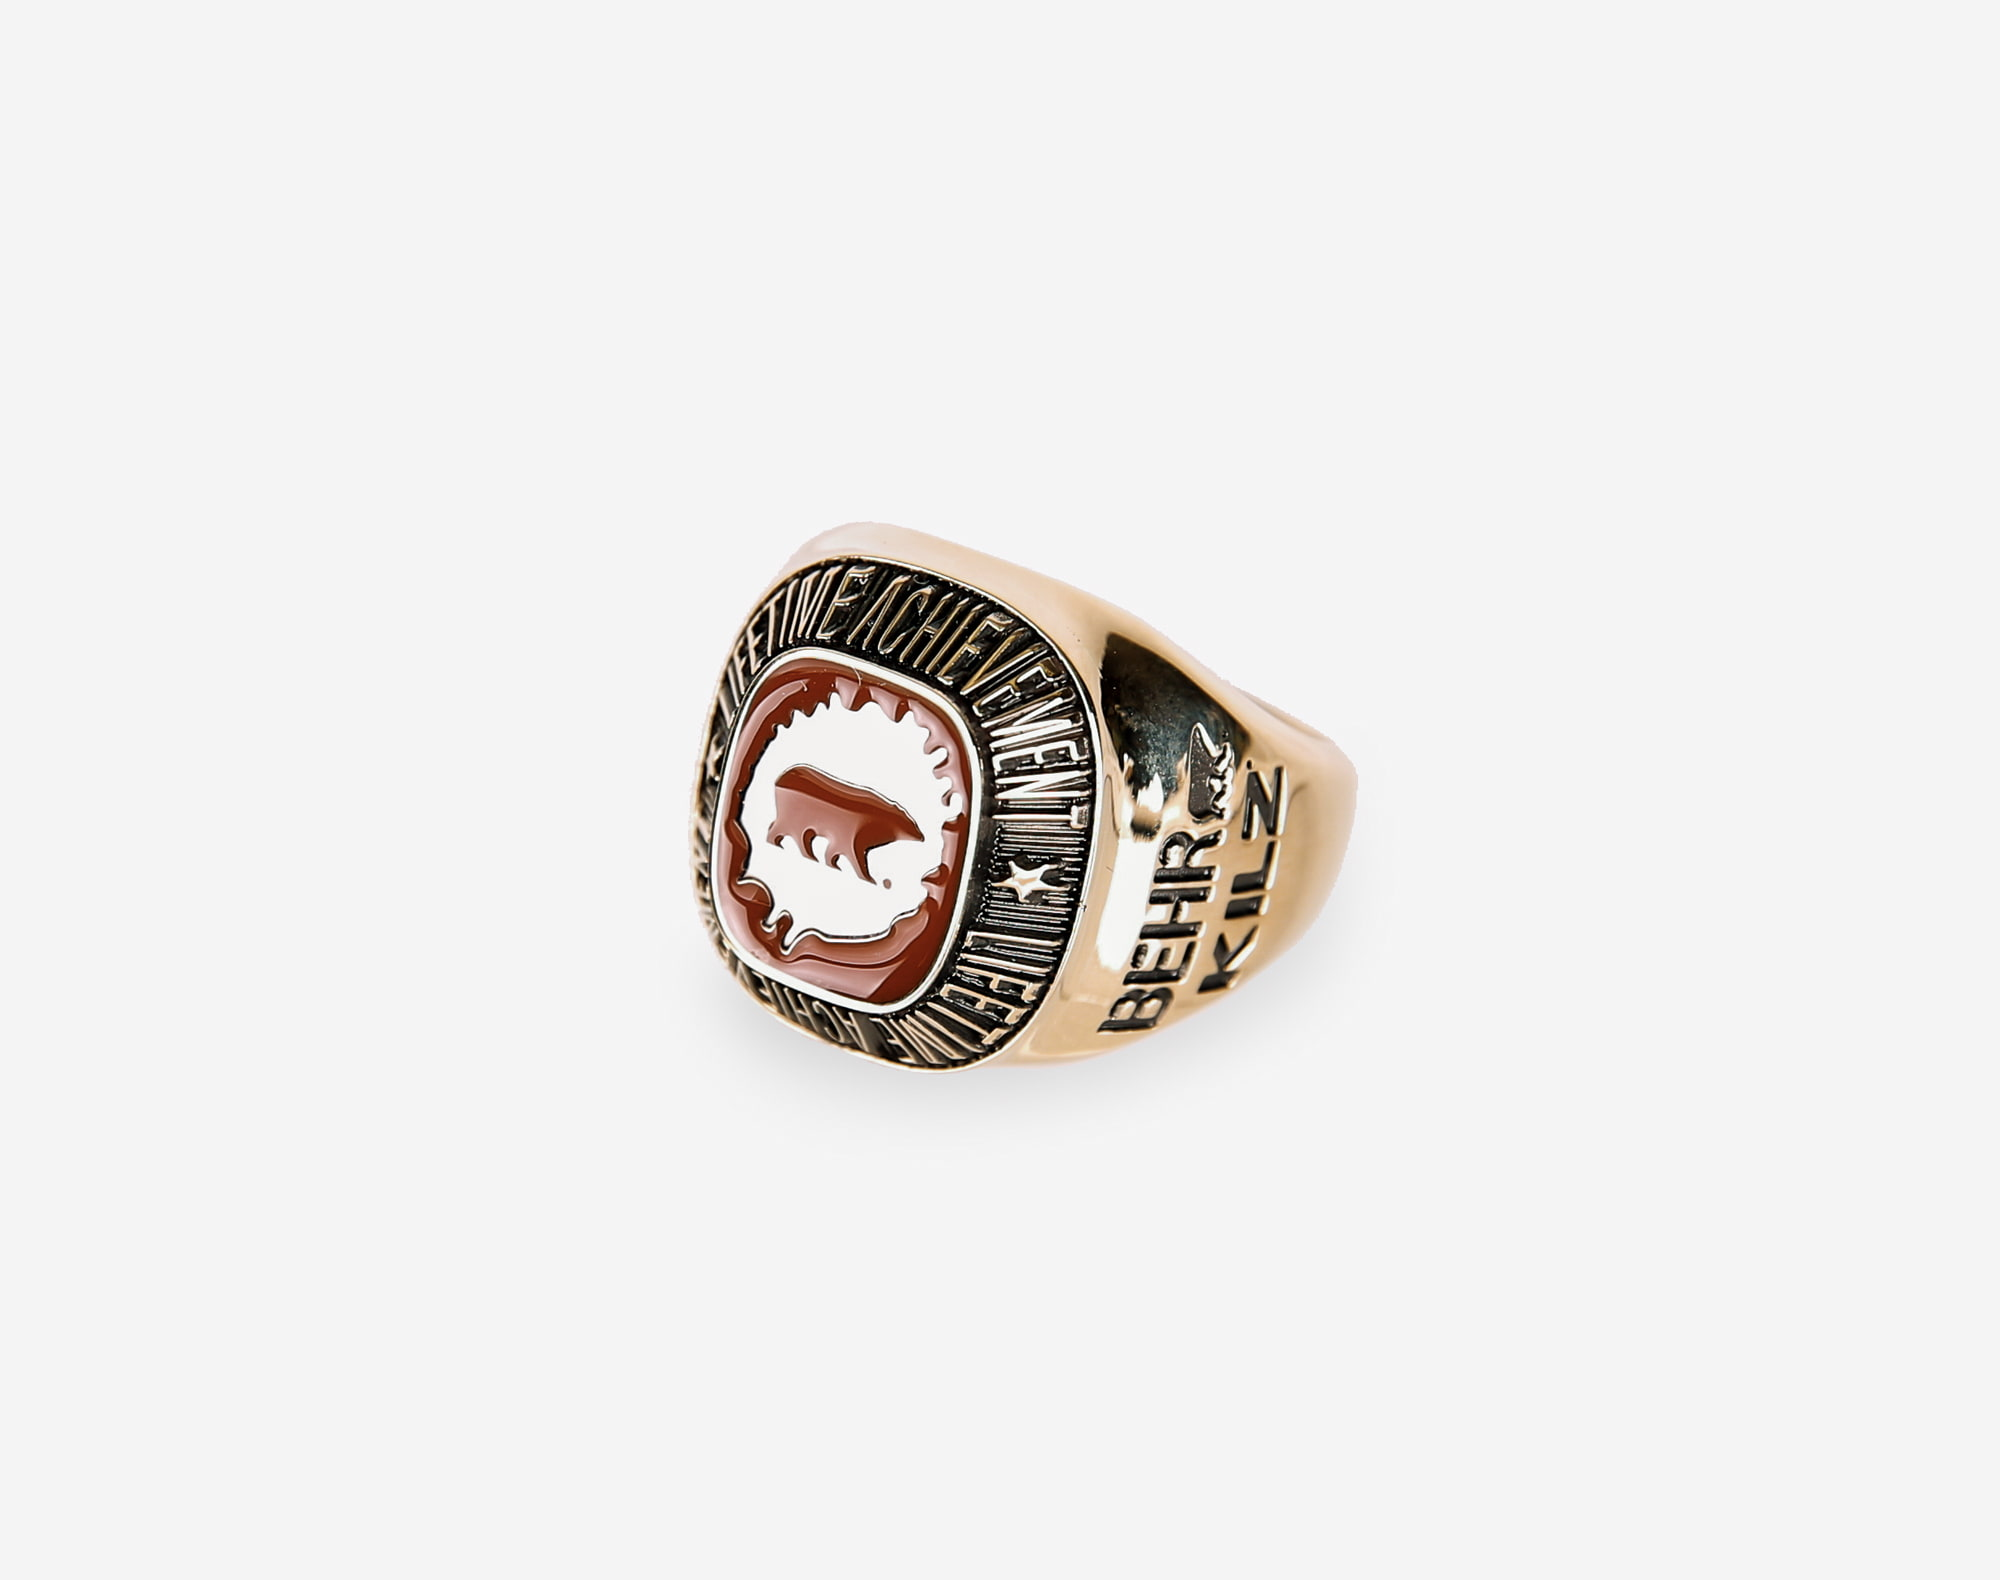 CLass ring shot on white in professional studio